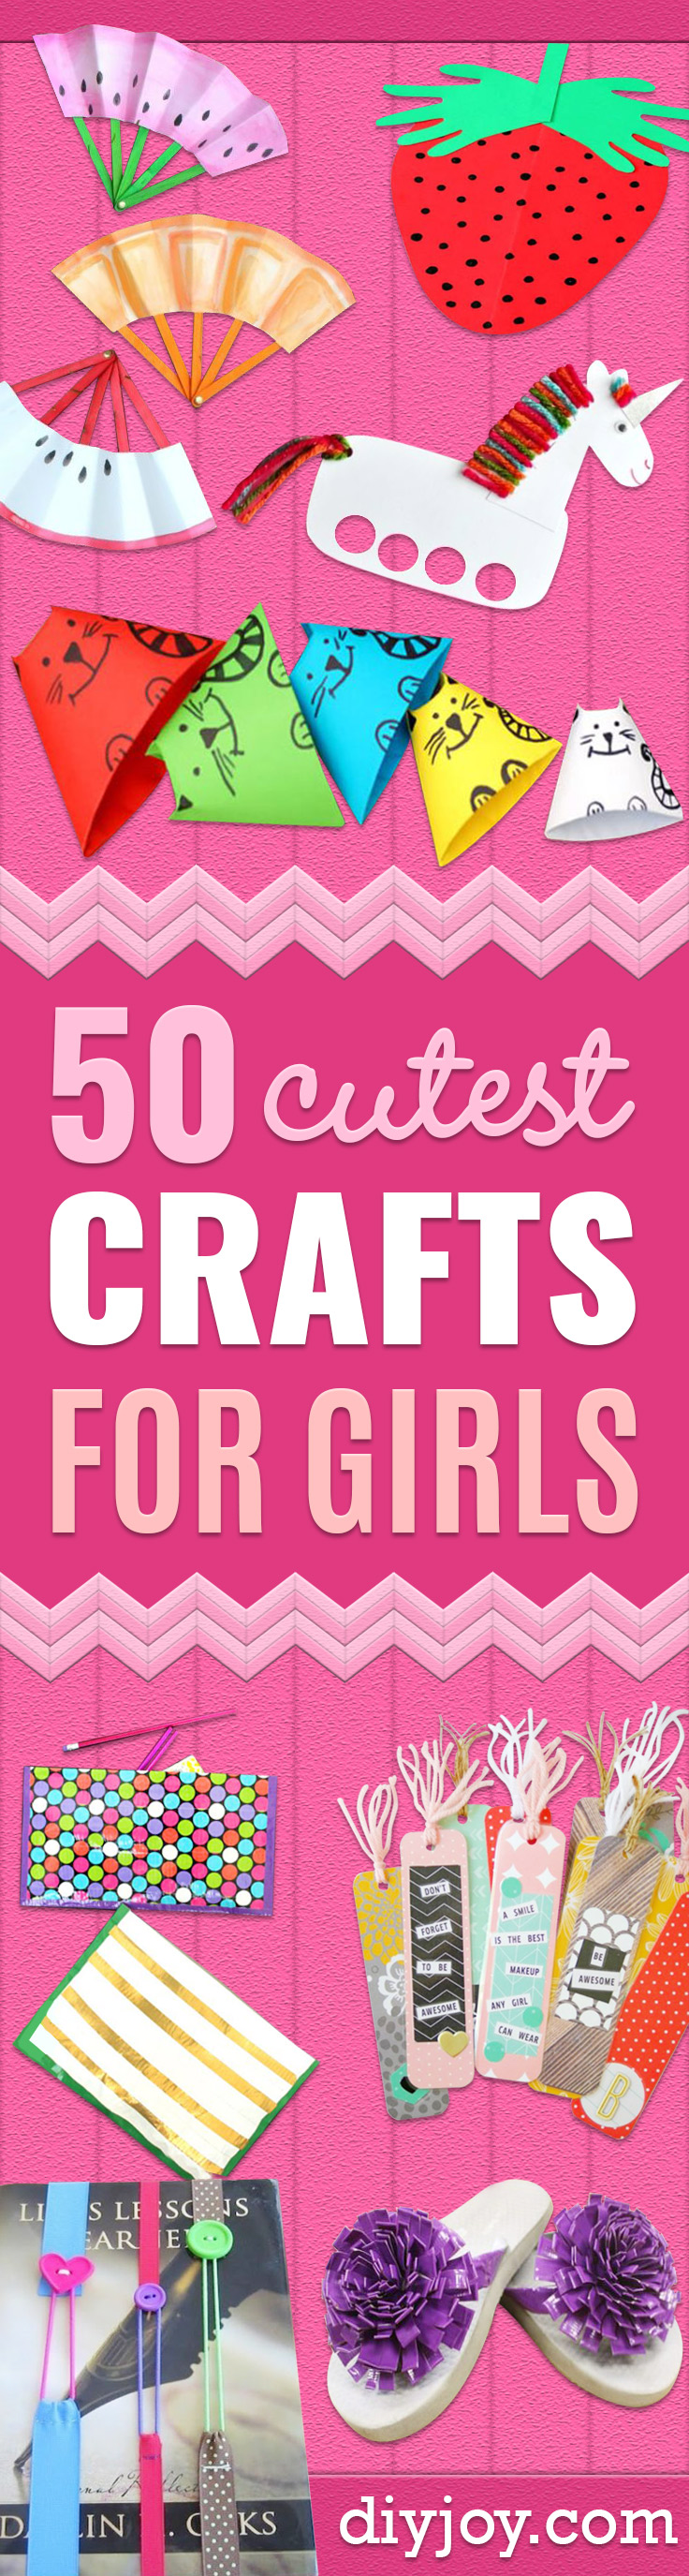 Crafts for Girls - Cute Crafts for Young Girls, Toddlers and School Children - Easy Girls Crafts -Fun Paints to Make, Arts and Craft Ideas, Wall Art Projects, Colorful Alphabet and Glue Crafts, String Art, Painting Lessons, Cheap Project Tutorials and Inexpensive Things for Kids to Make at Home - Cute Room Decor and DIY Gifts #girlscrafts #craftsforgirls #kidscrafts